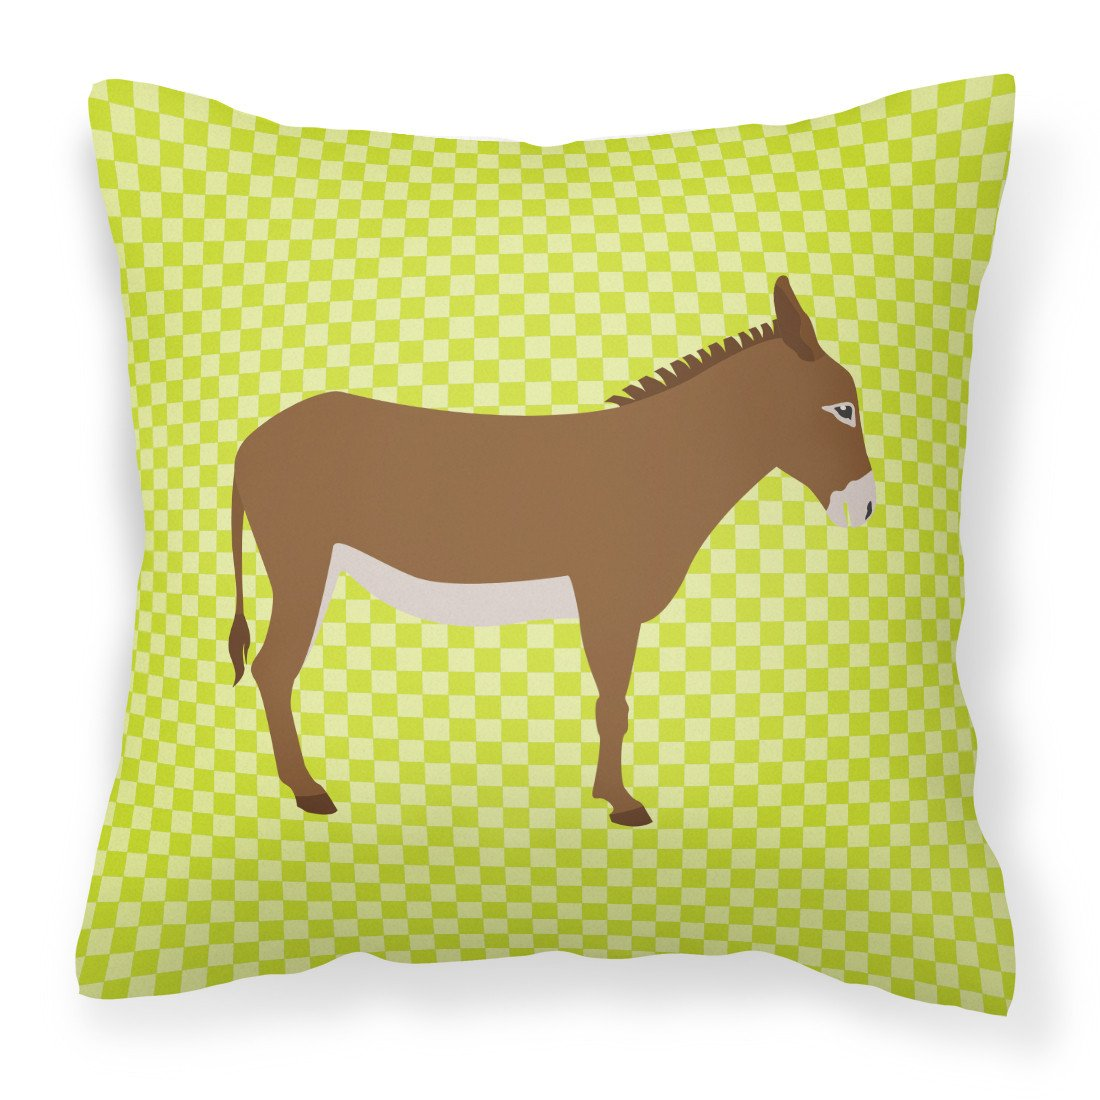 Cotentin Donkey Green Fabric Decorative Pillow BB7675PW1818 by Caroline's Treasures